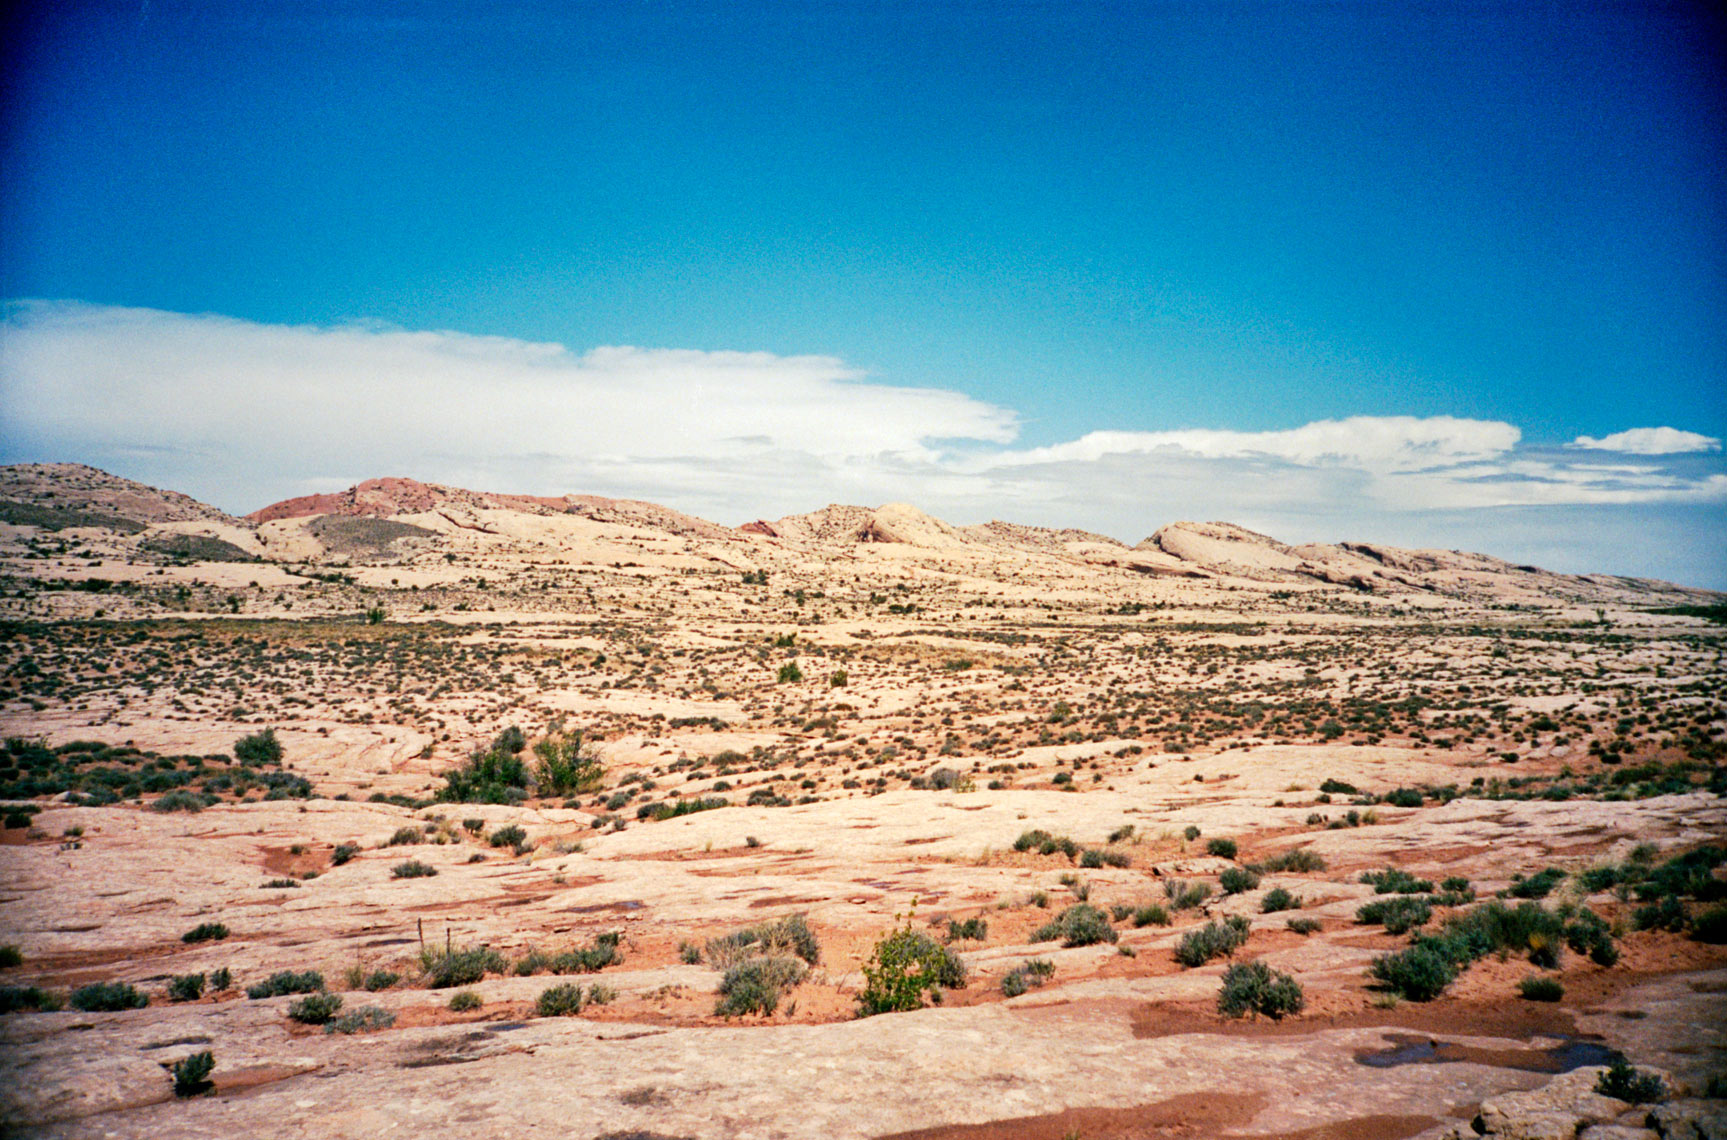 The Comb Ridge near Bluff Utah